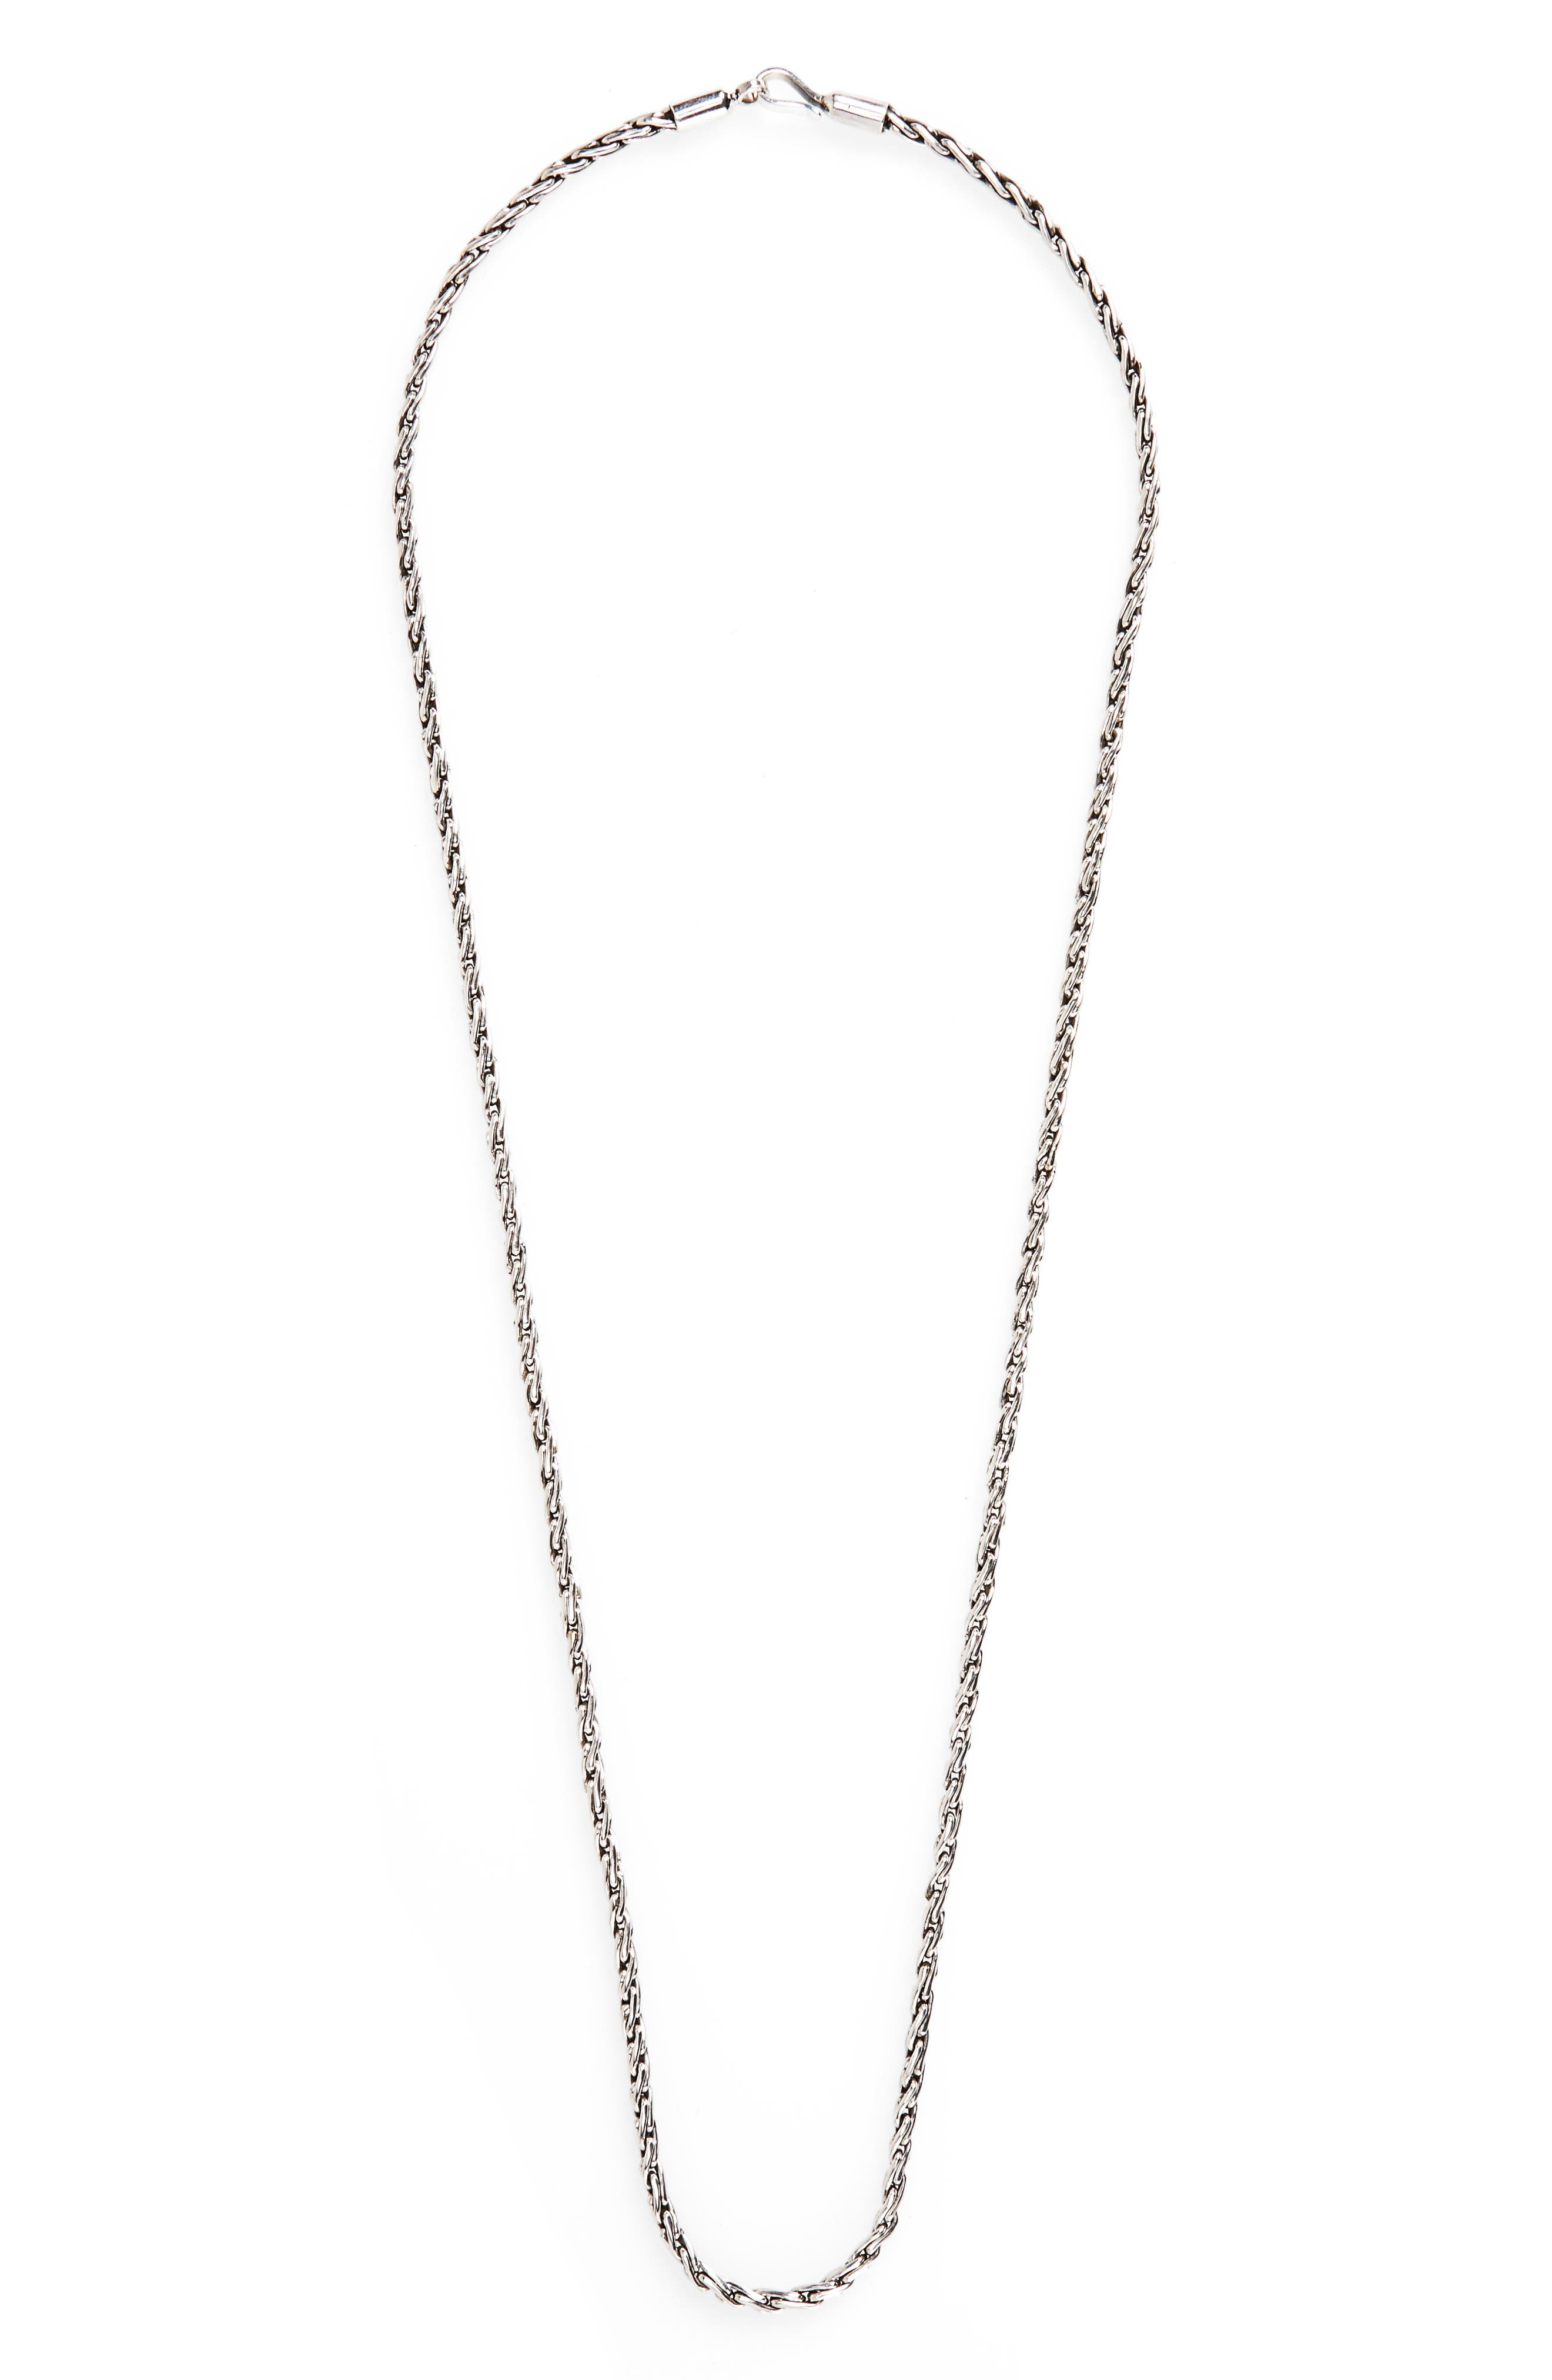 Alternate Image 1 Selected - Caputo & Co. Sterling Silver Rope Chain Necklace